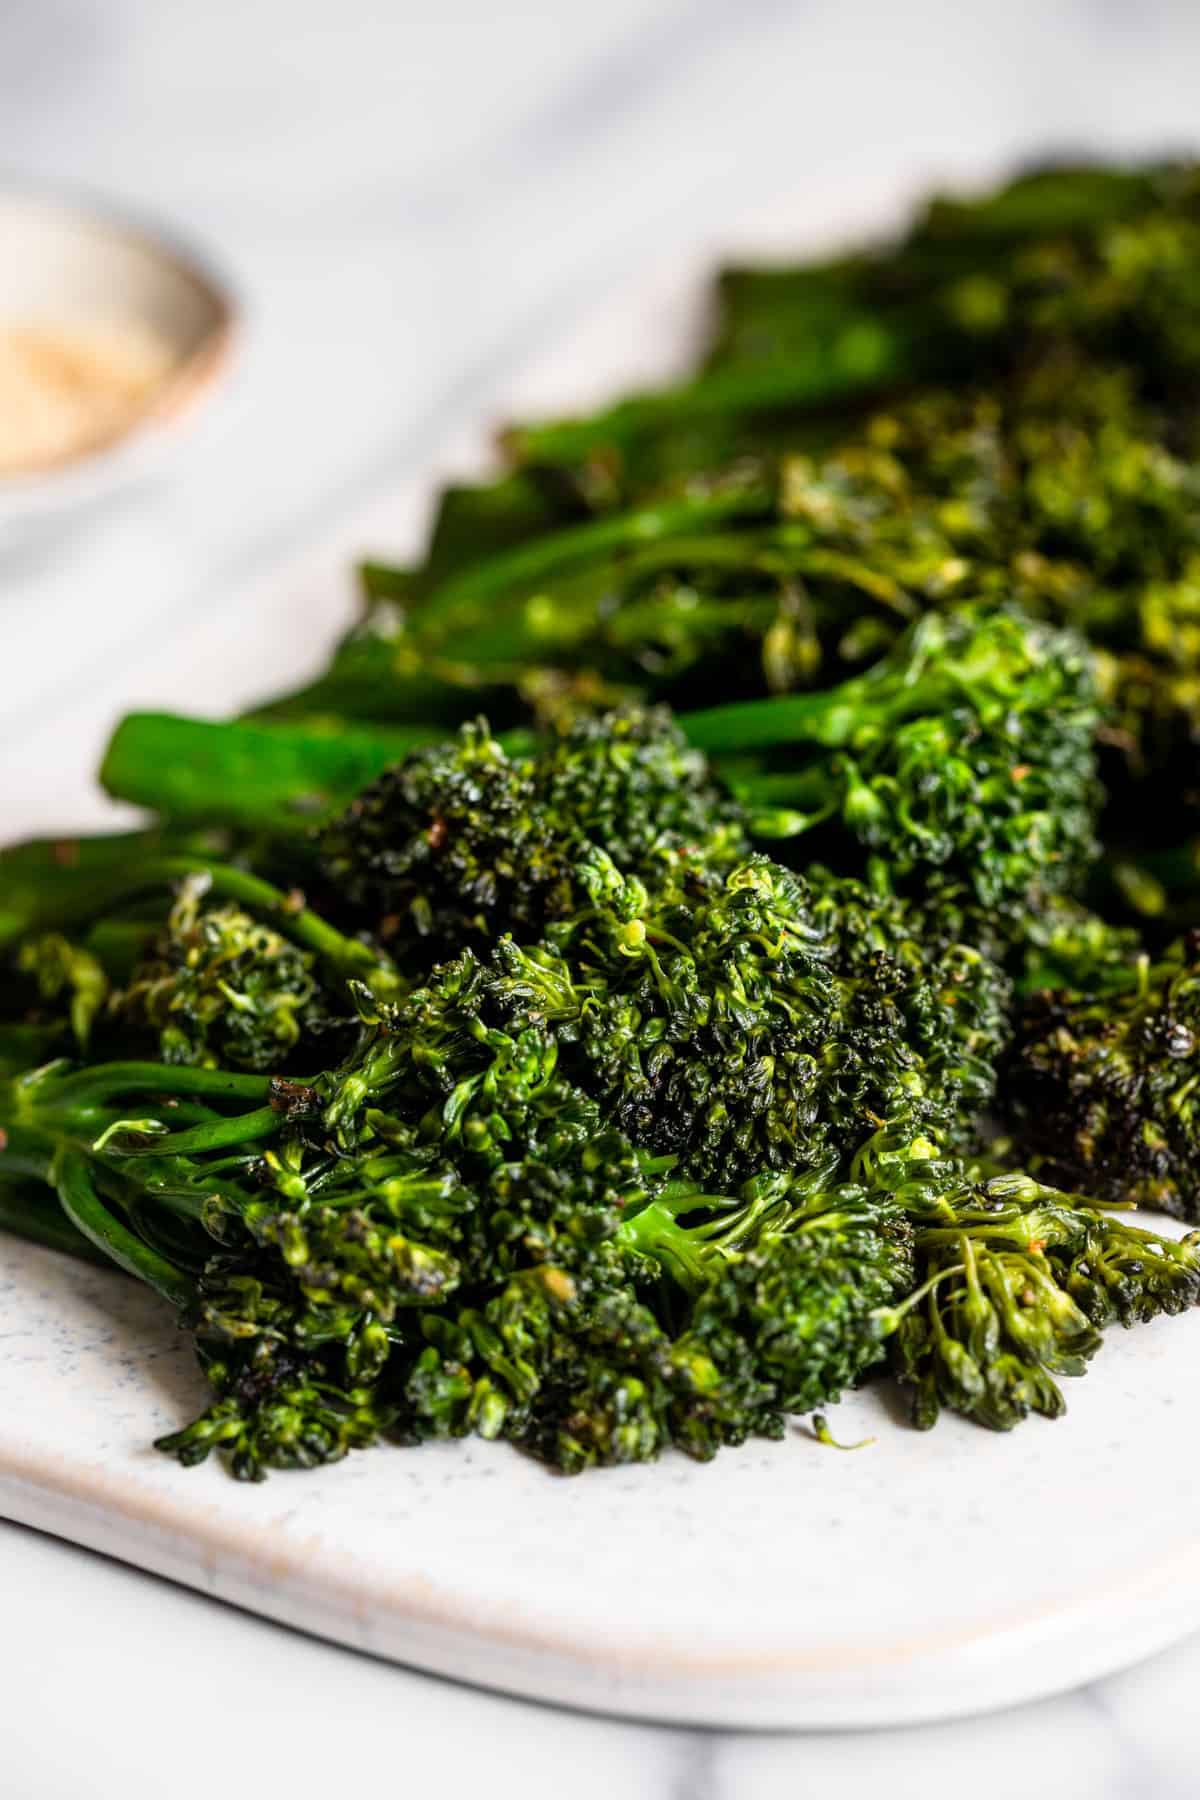 Sautéed broccolini stalks ready to be cooked